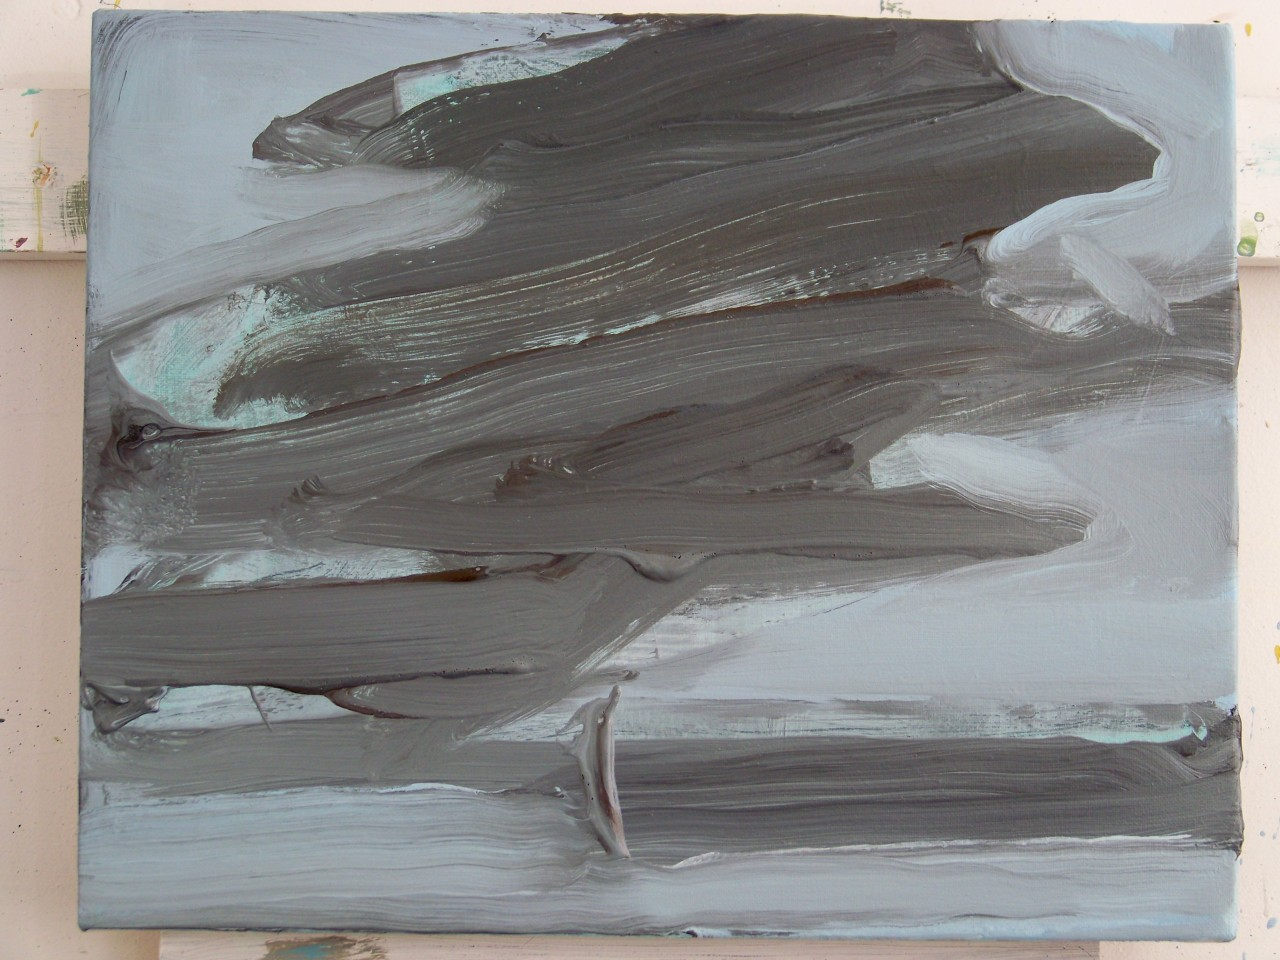 A new small painting, 24 x 30 cm, of a dark cloud over the sea.